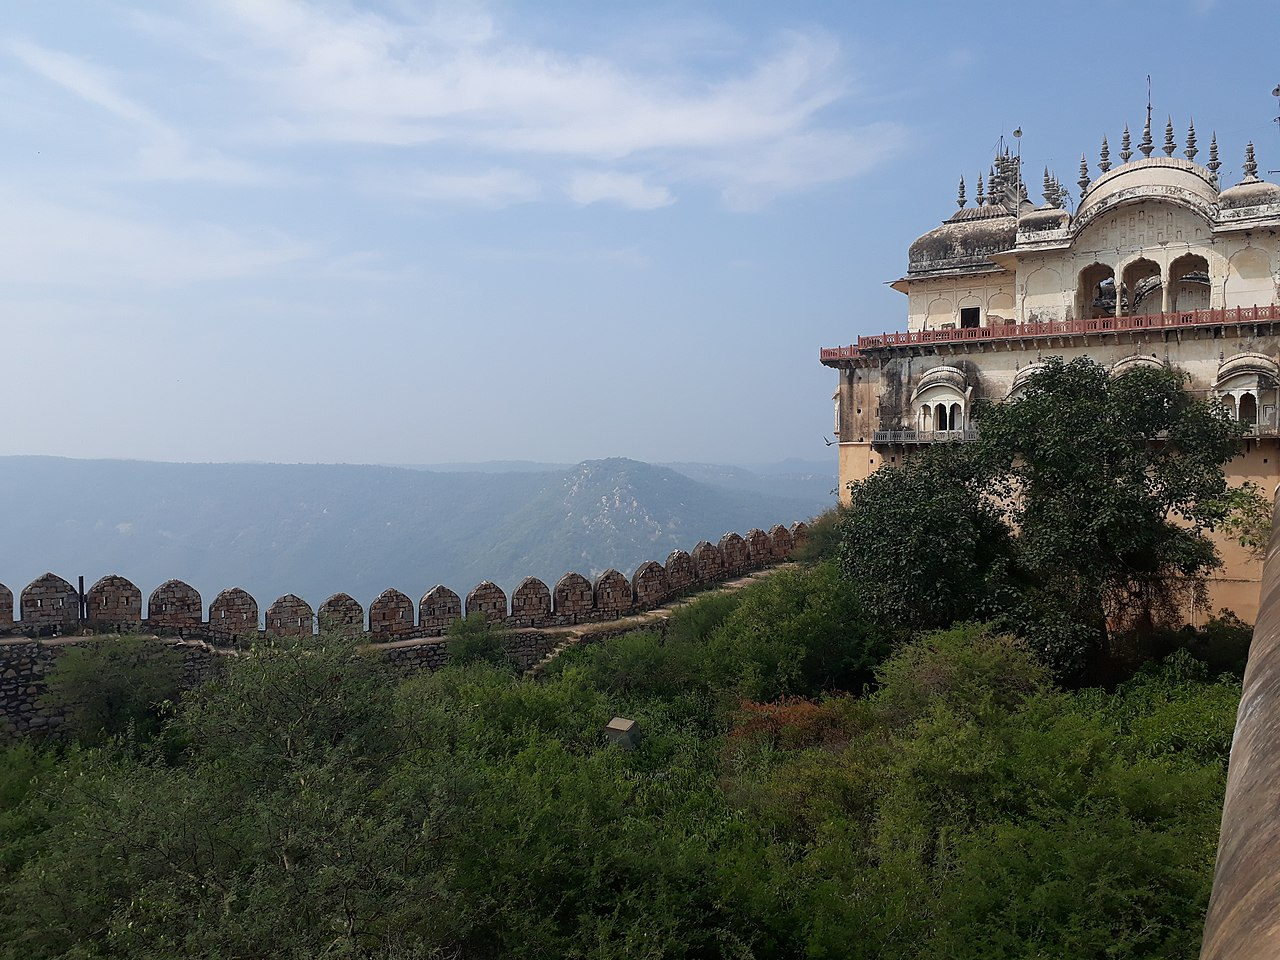 History of the Alwar Fort, Rajasthan